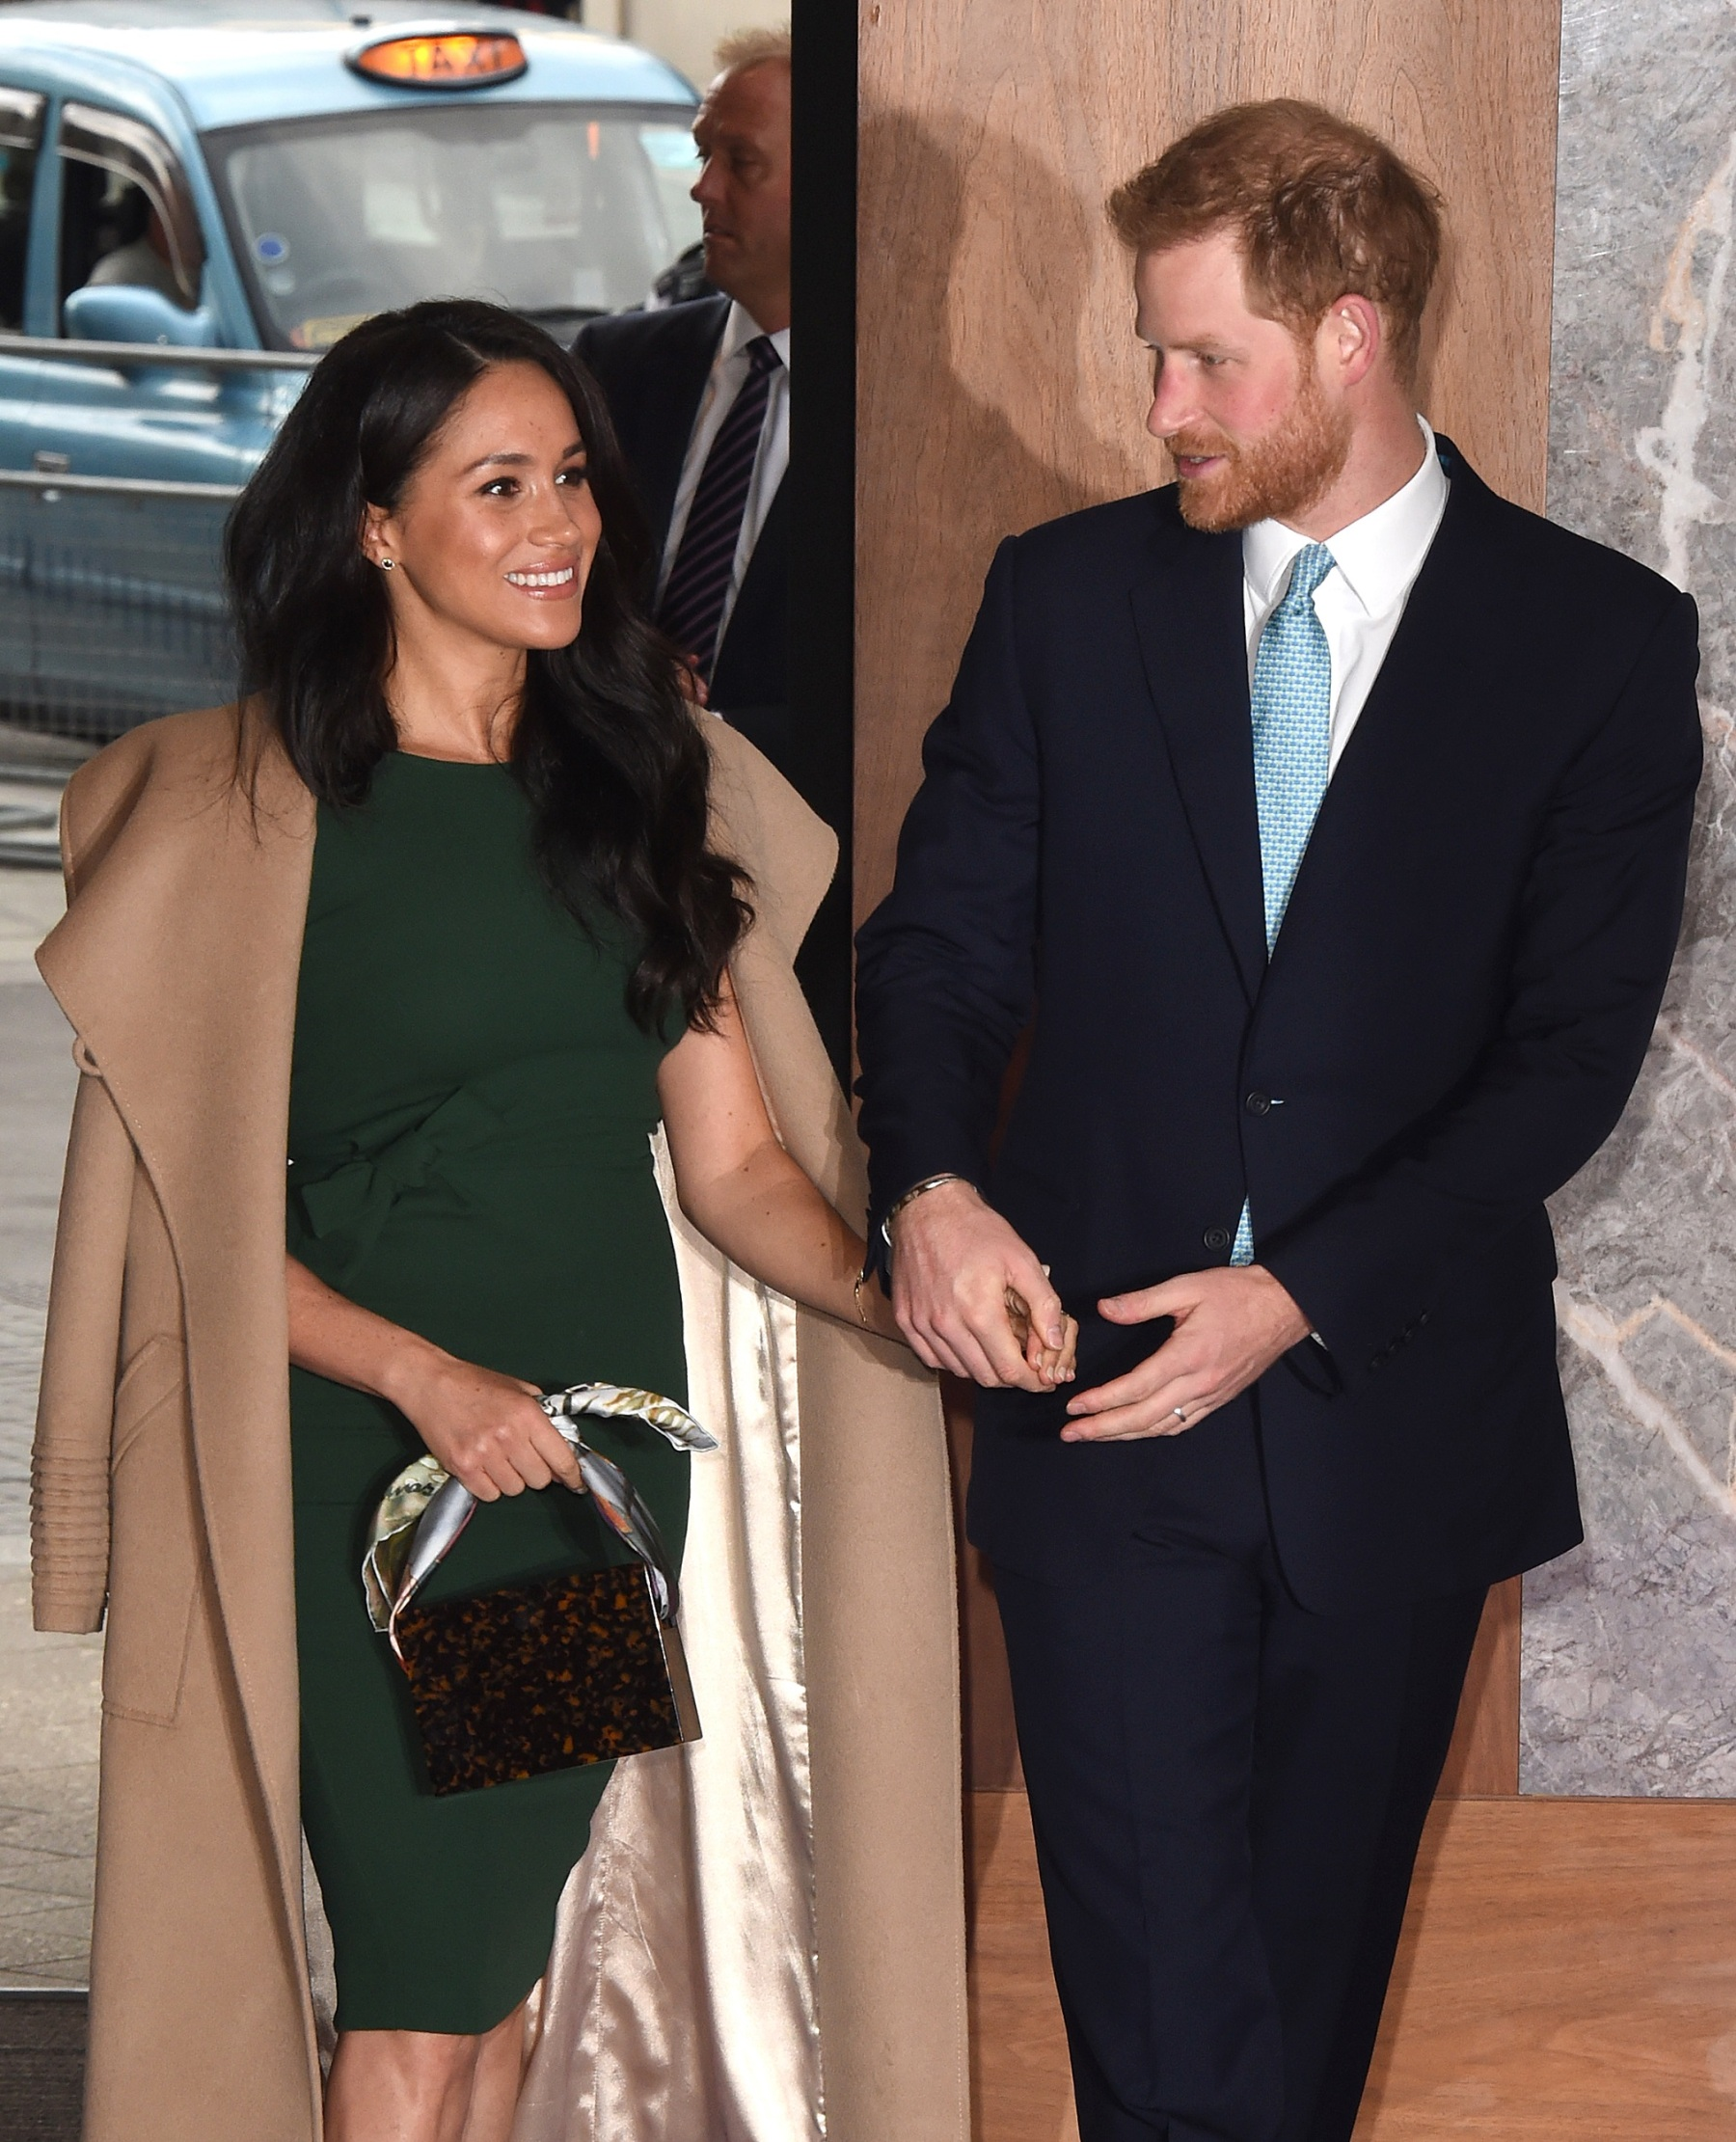 LONDON, ENGLAND - OCTOBER 15: Prince Harry, Duke of Sussex and Meghan, Duchess of Sussex attend the WellChild awards at Royal Lancaster Hotel on October 15, 2019 in London, England. (Photo by Stuart C. Wilson/Getty Images)